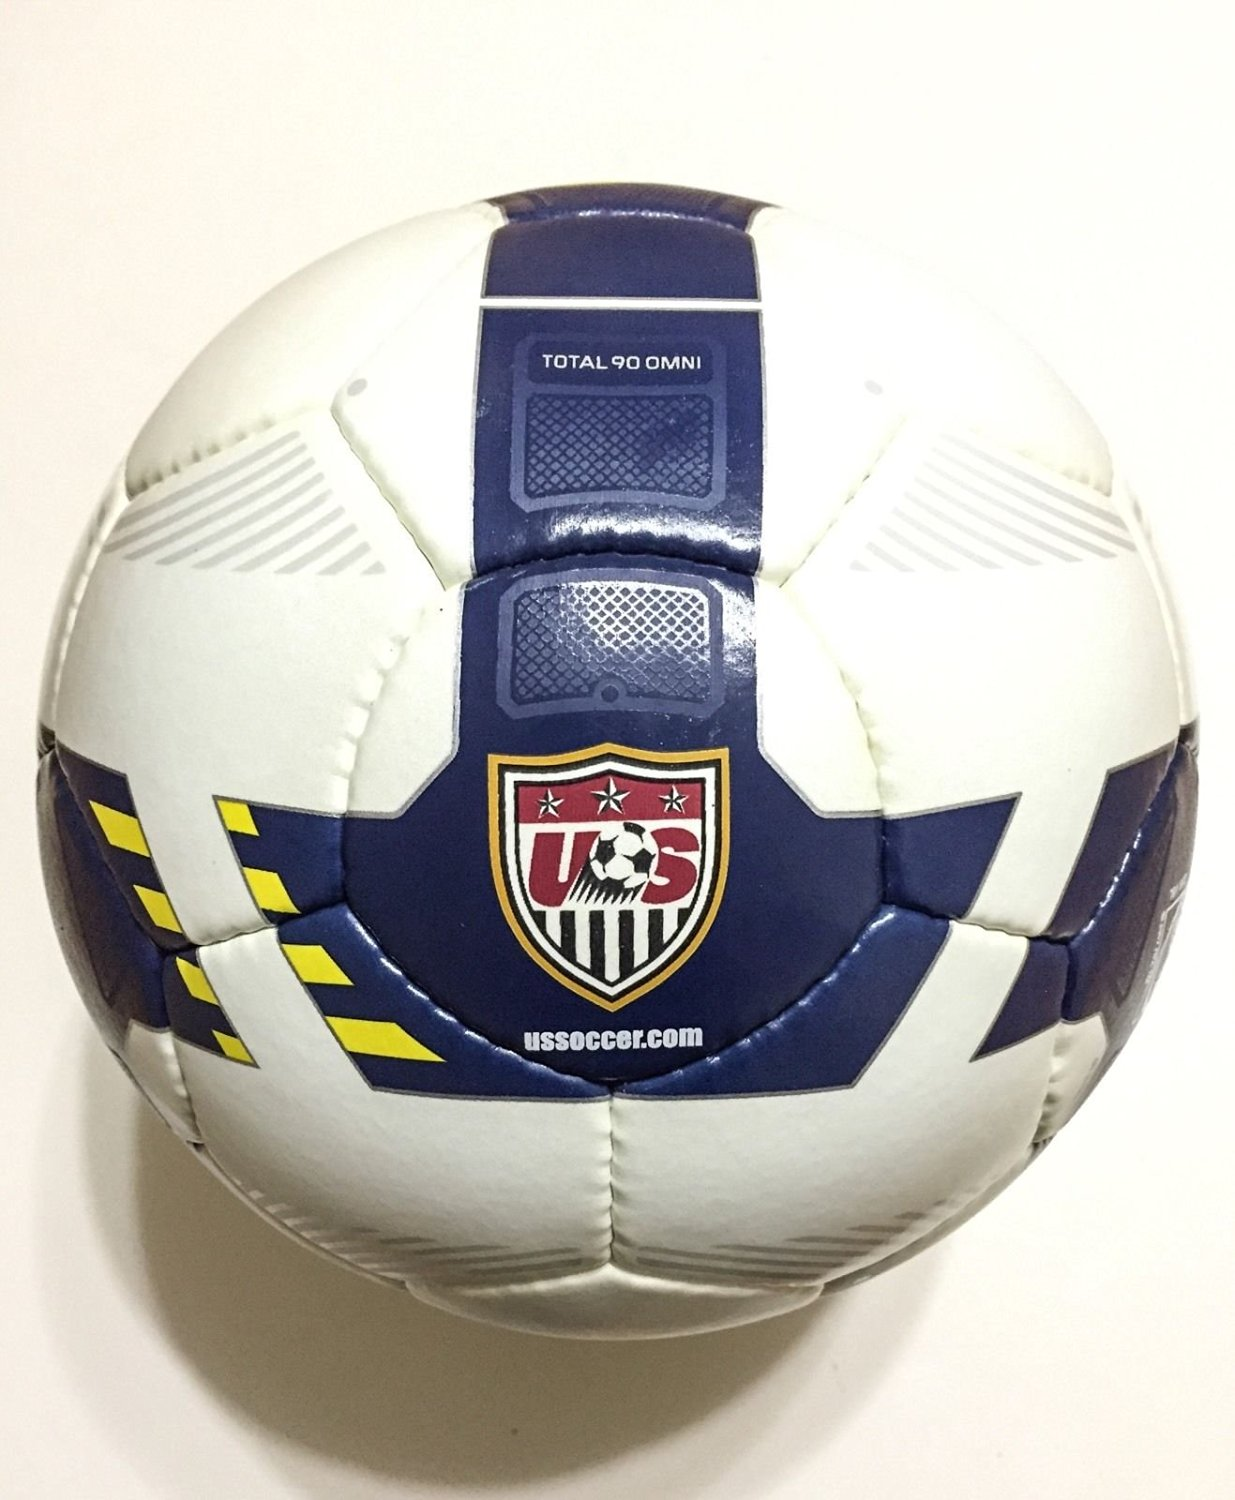 finest selection 9cf67 d961a Nike Total 90 OMNI Offical Match Ball size 5 US soccer development Academy